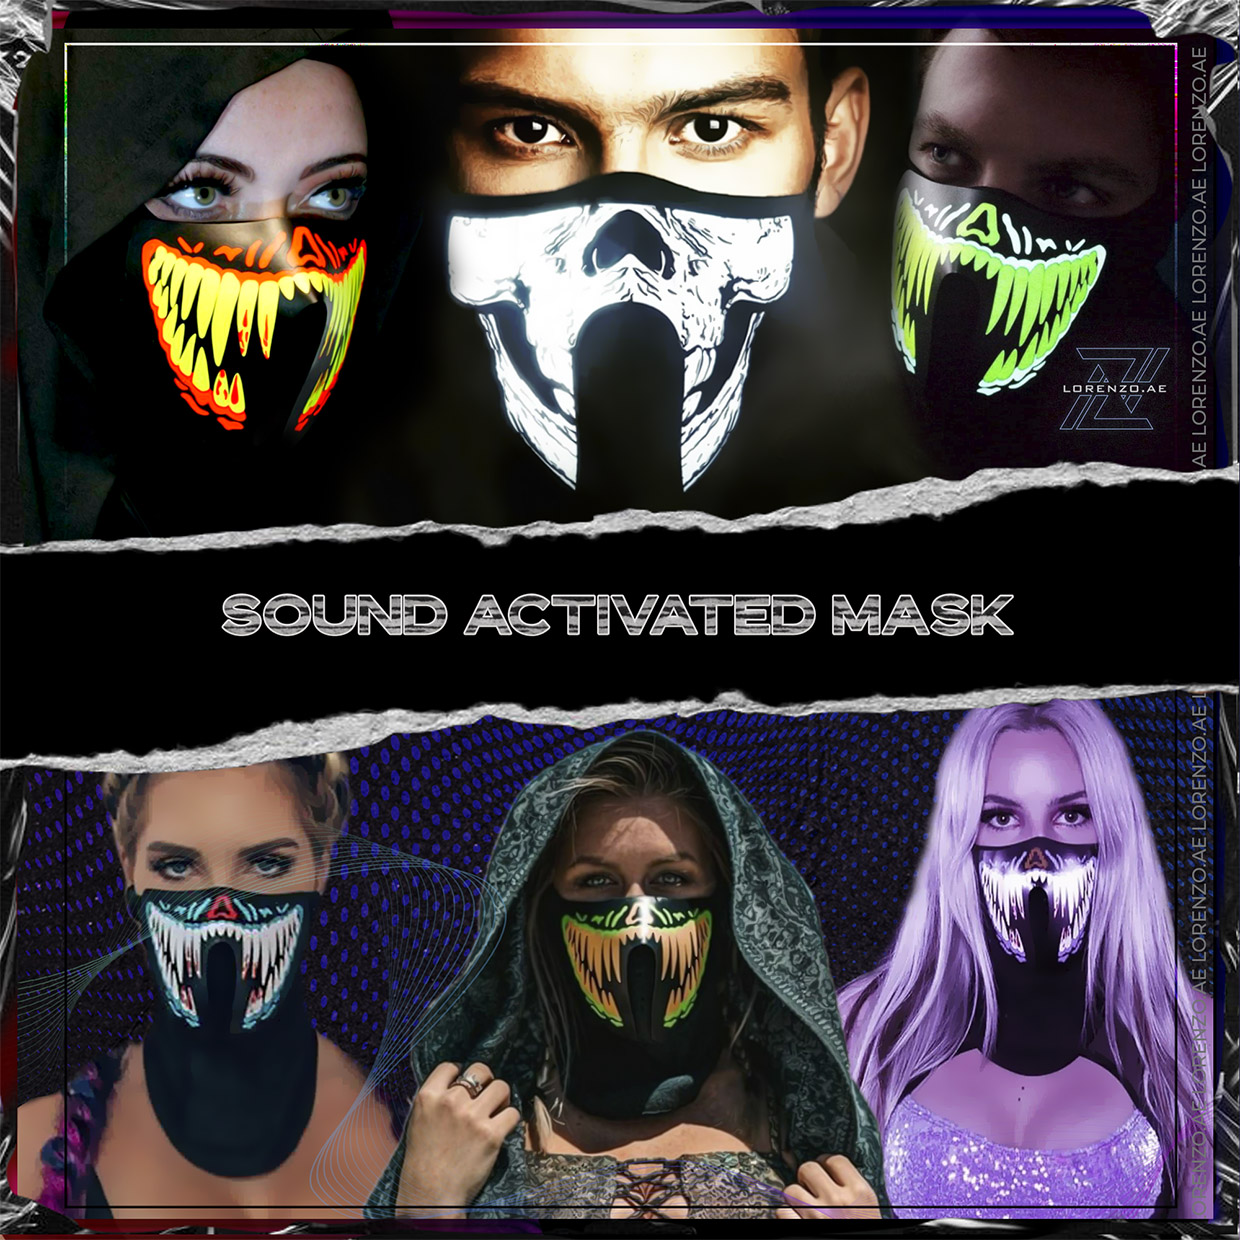 Category sound activated mask